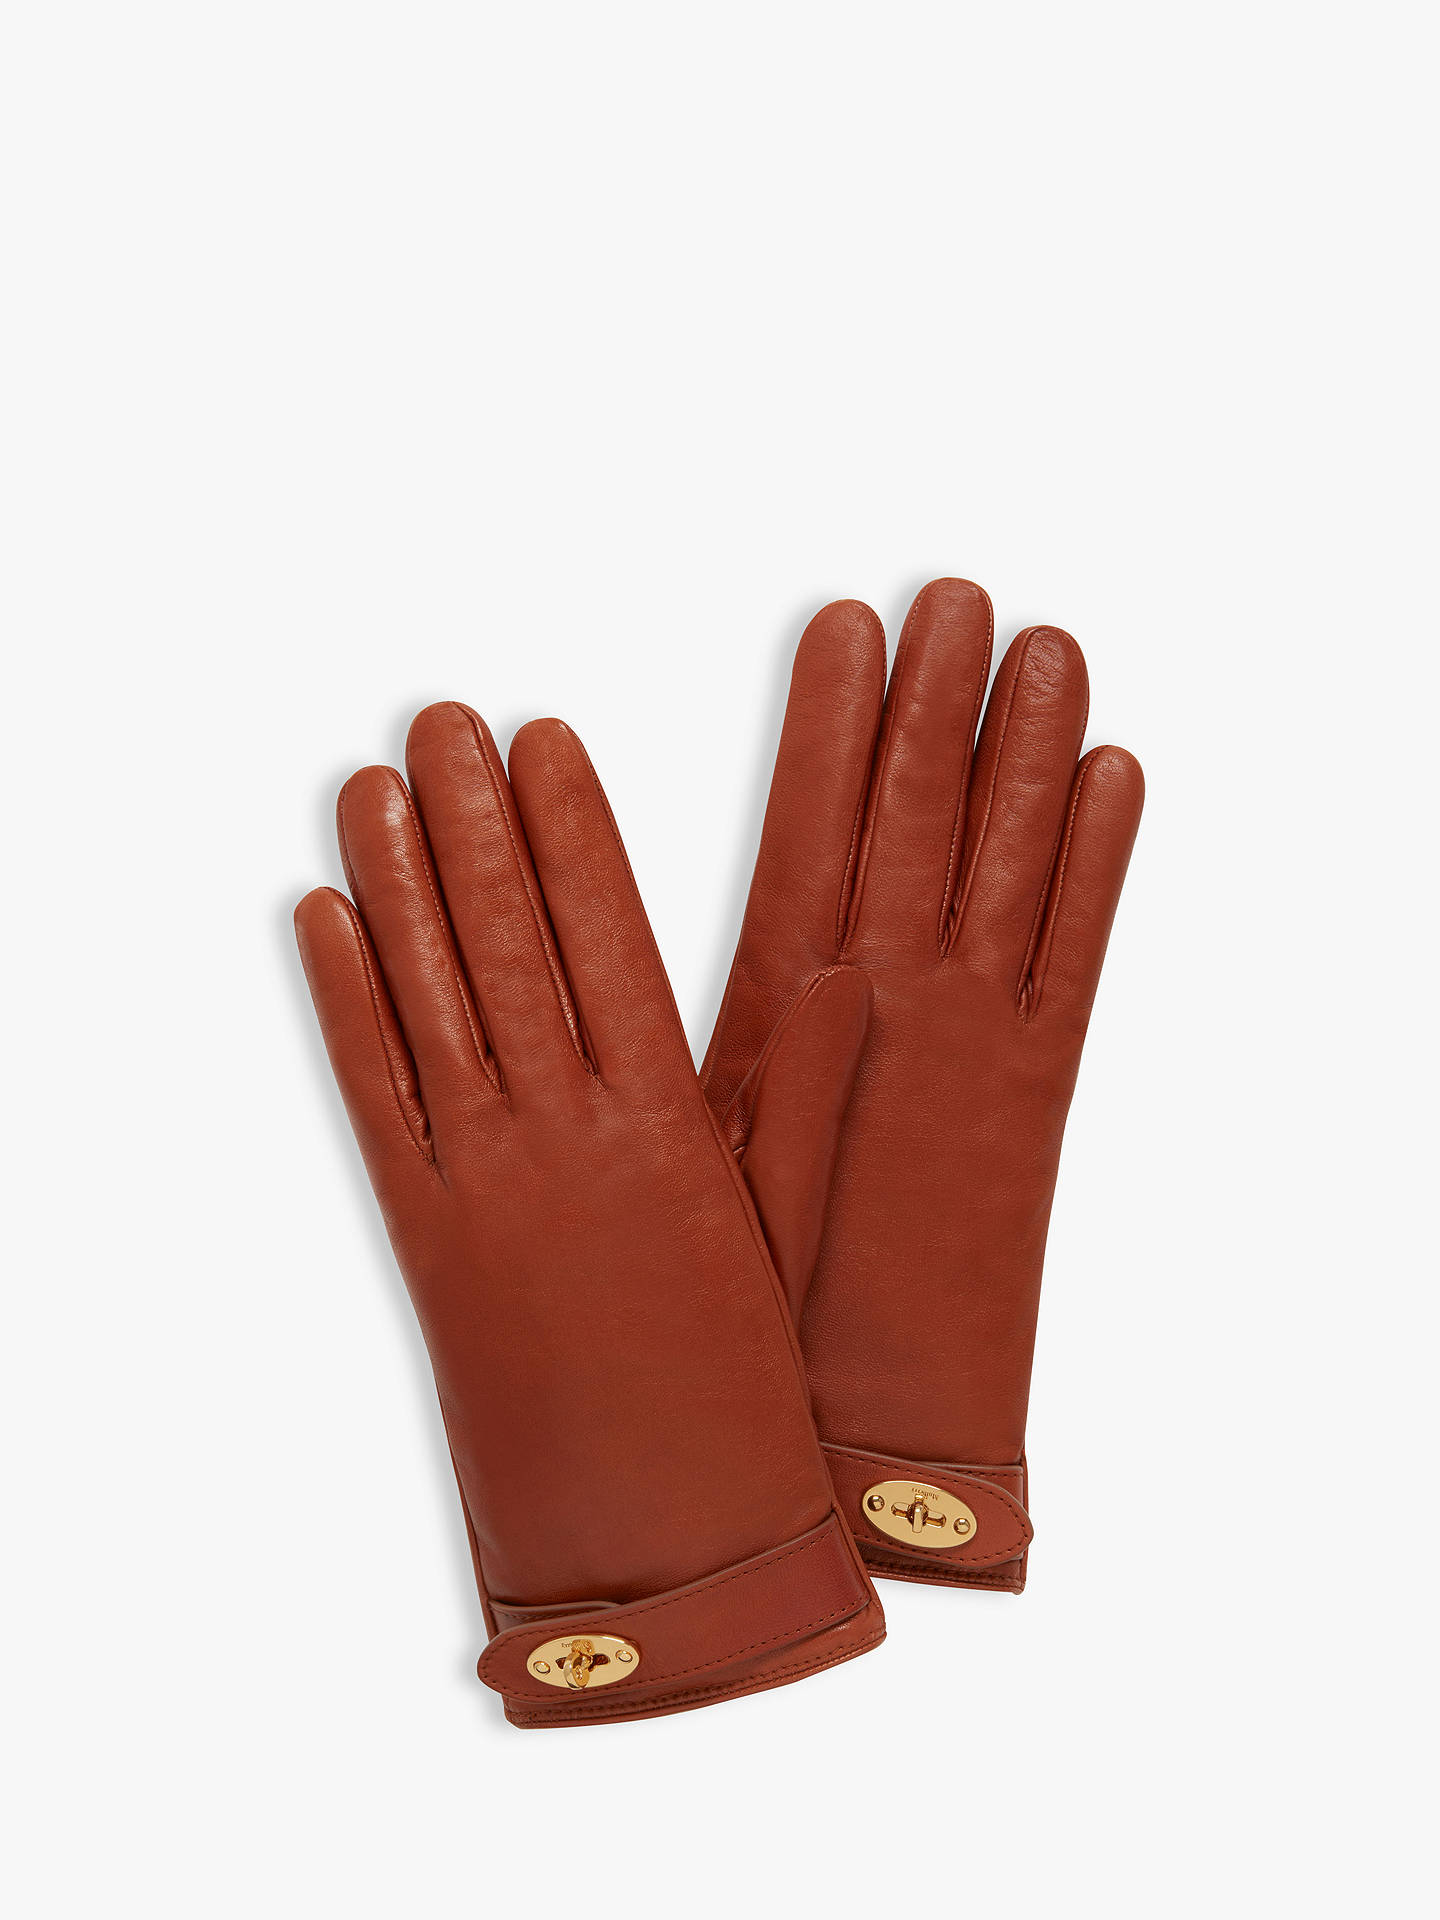 985426b1abe91 Buy Mulberry Women s Darley Nappa Leather Gloves